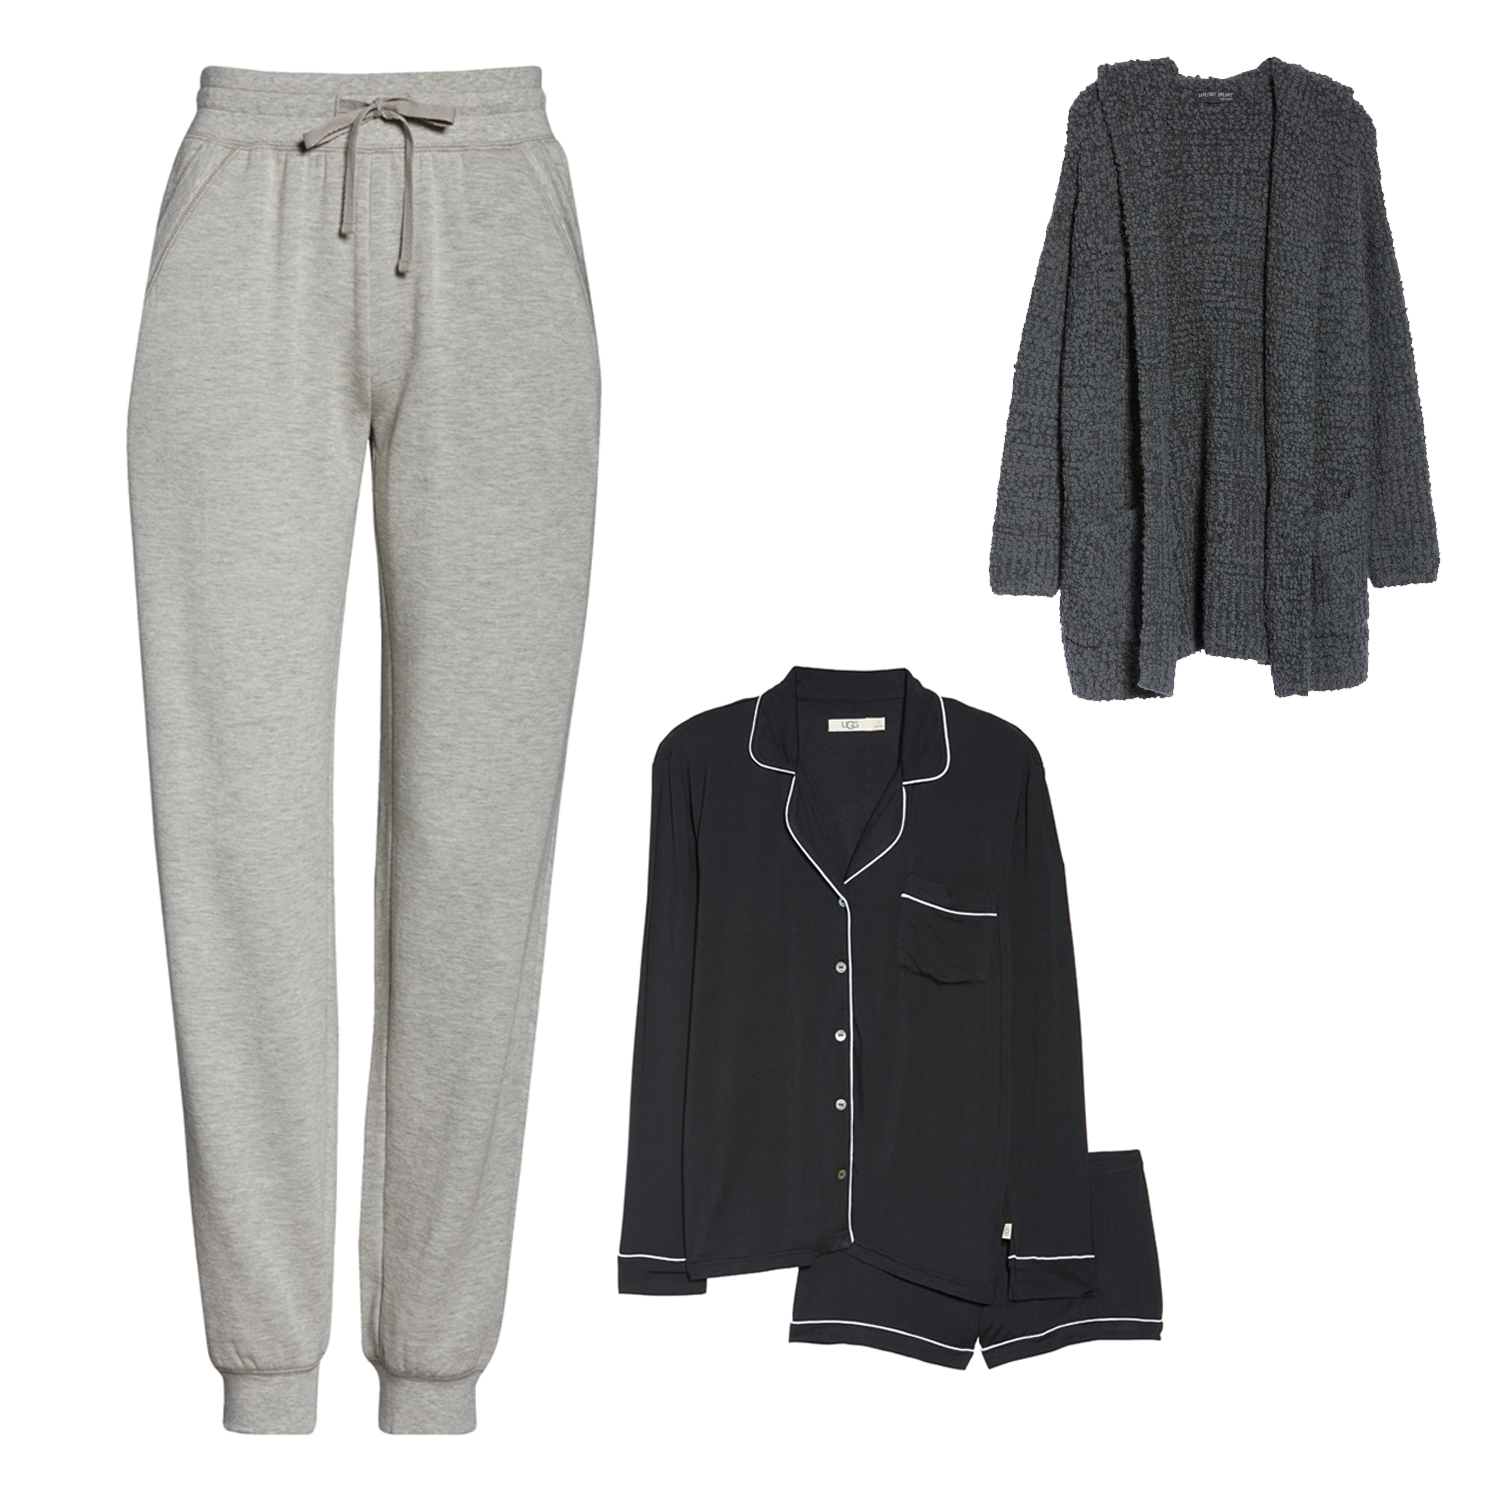 Nordstrom Women Clothing Collage